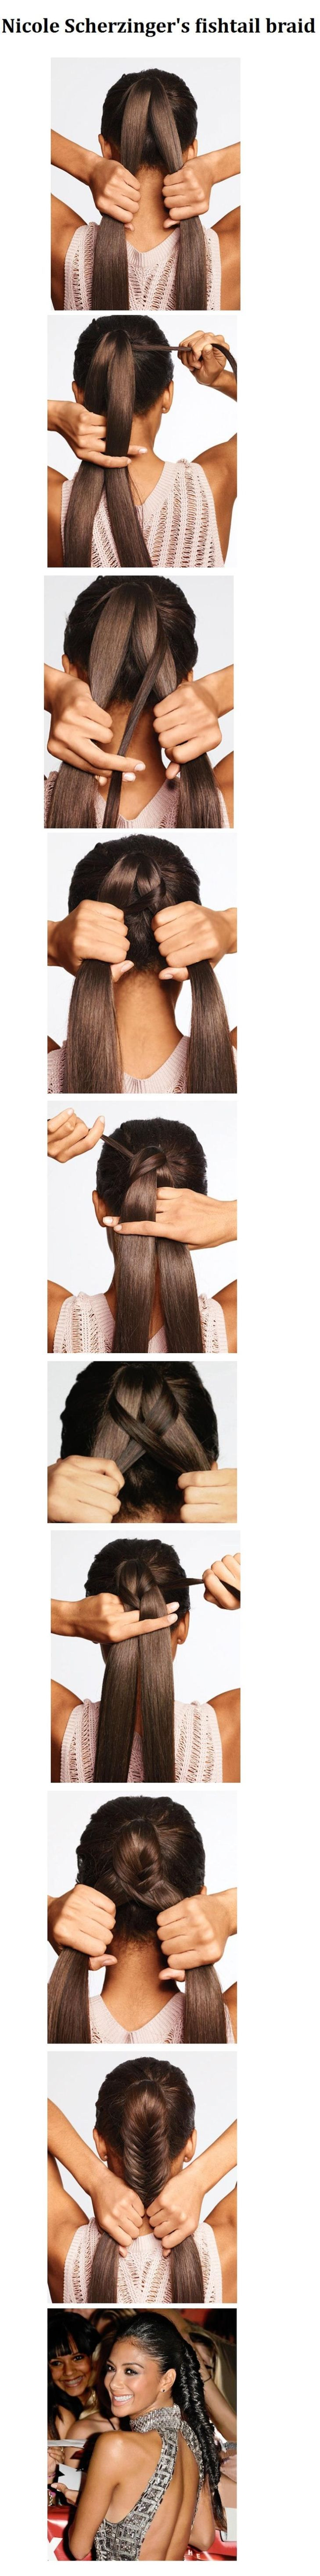 fishbone braid instructions - photo #30